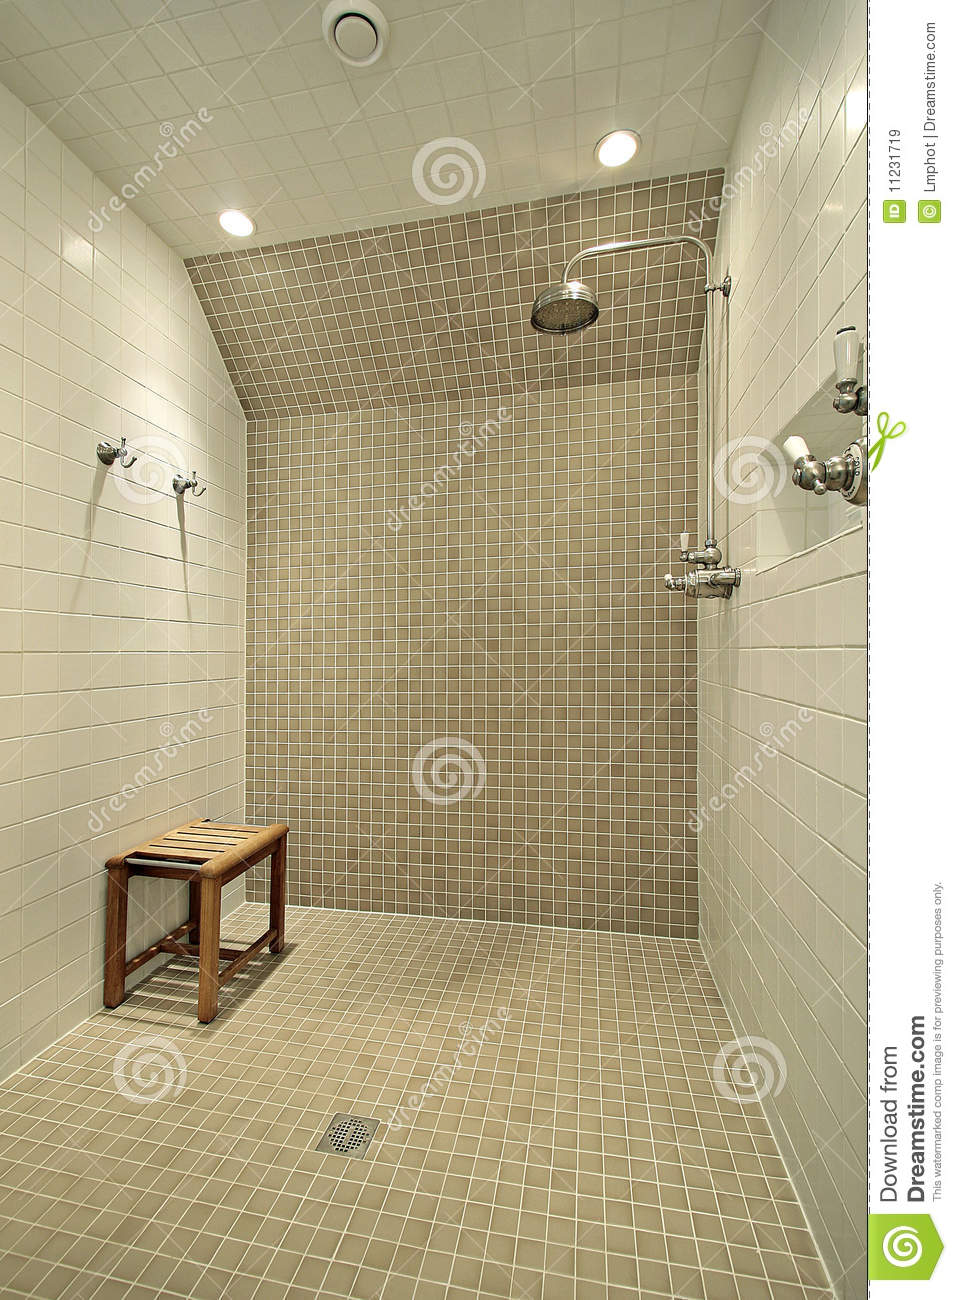 Large Shower With Bench Royalty Free Stock Images Image